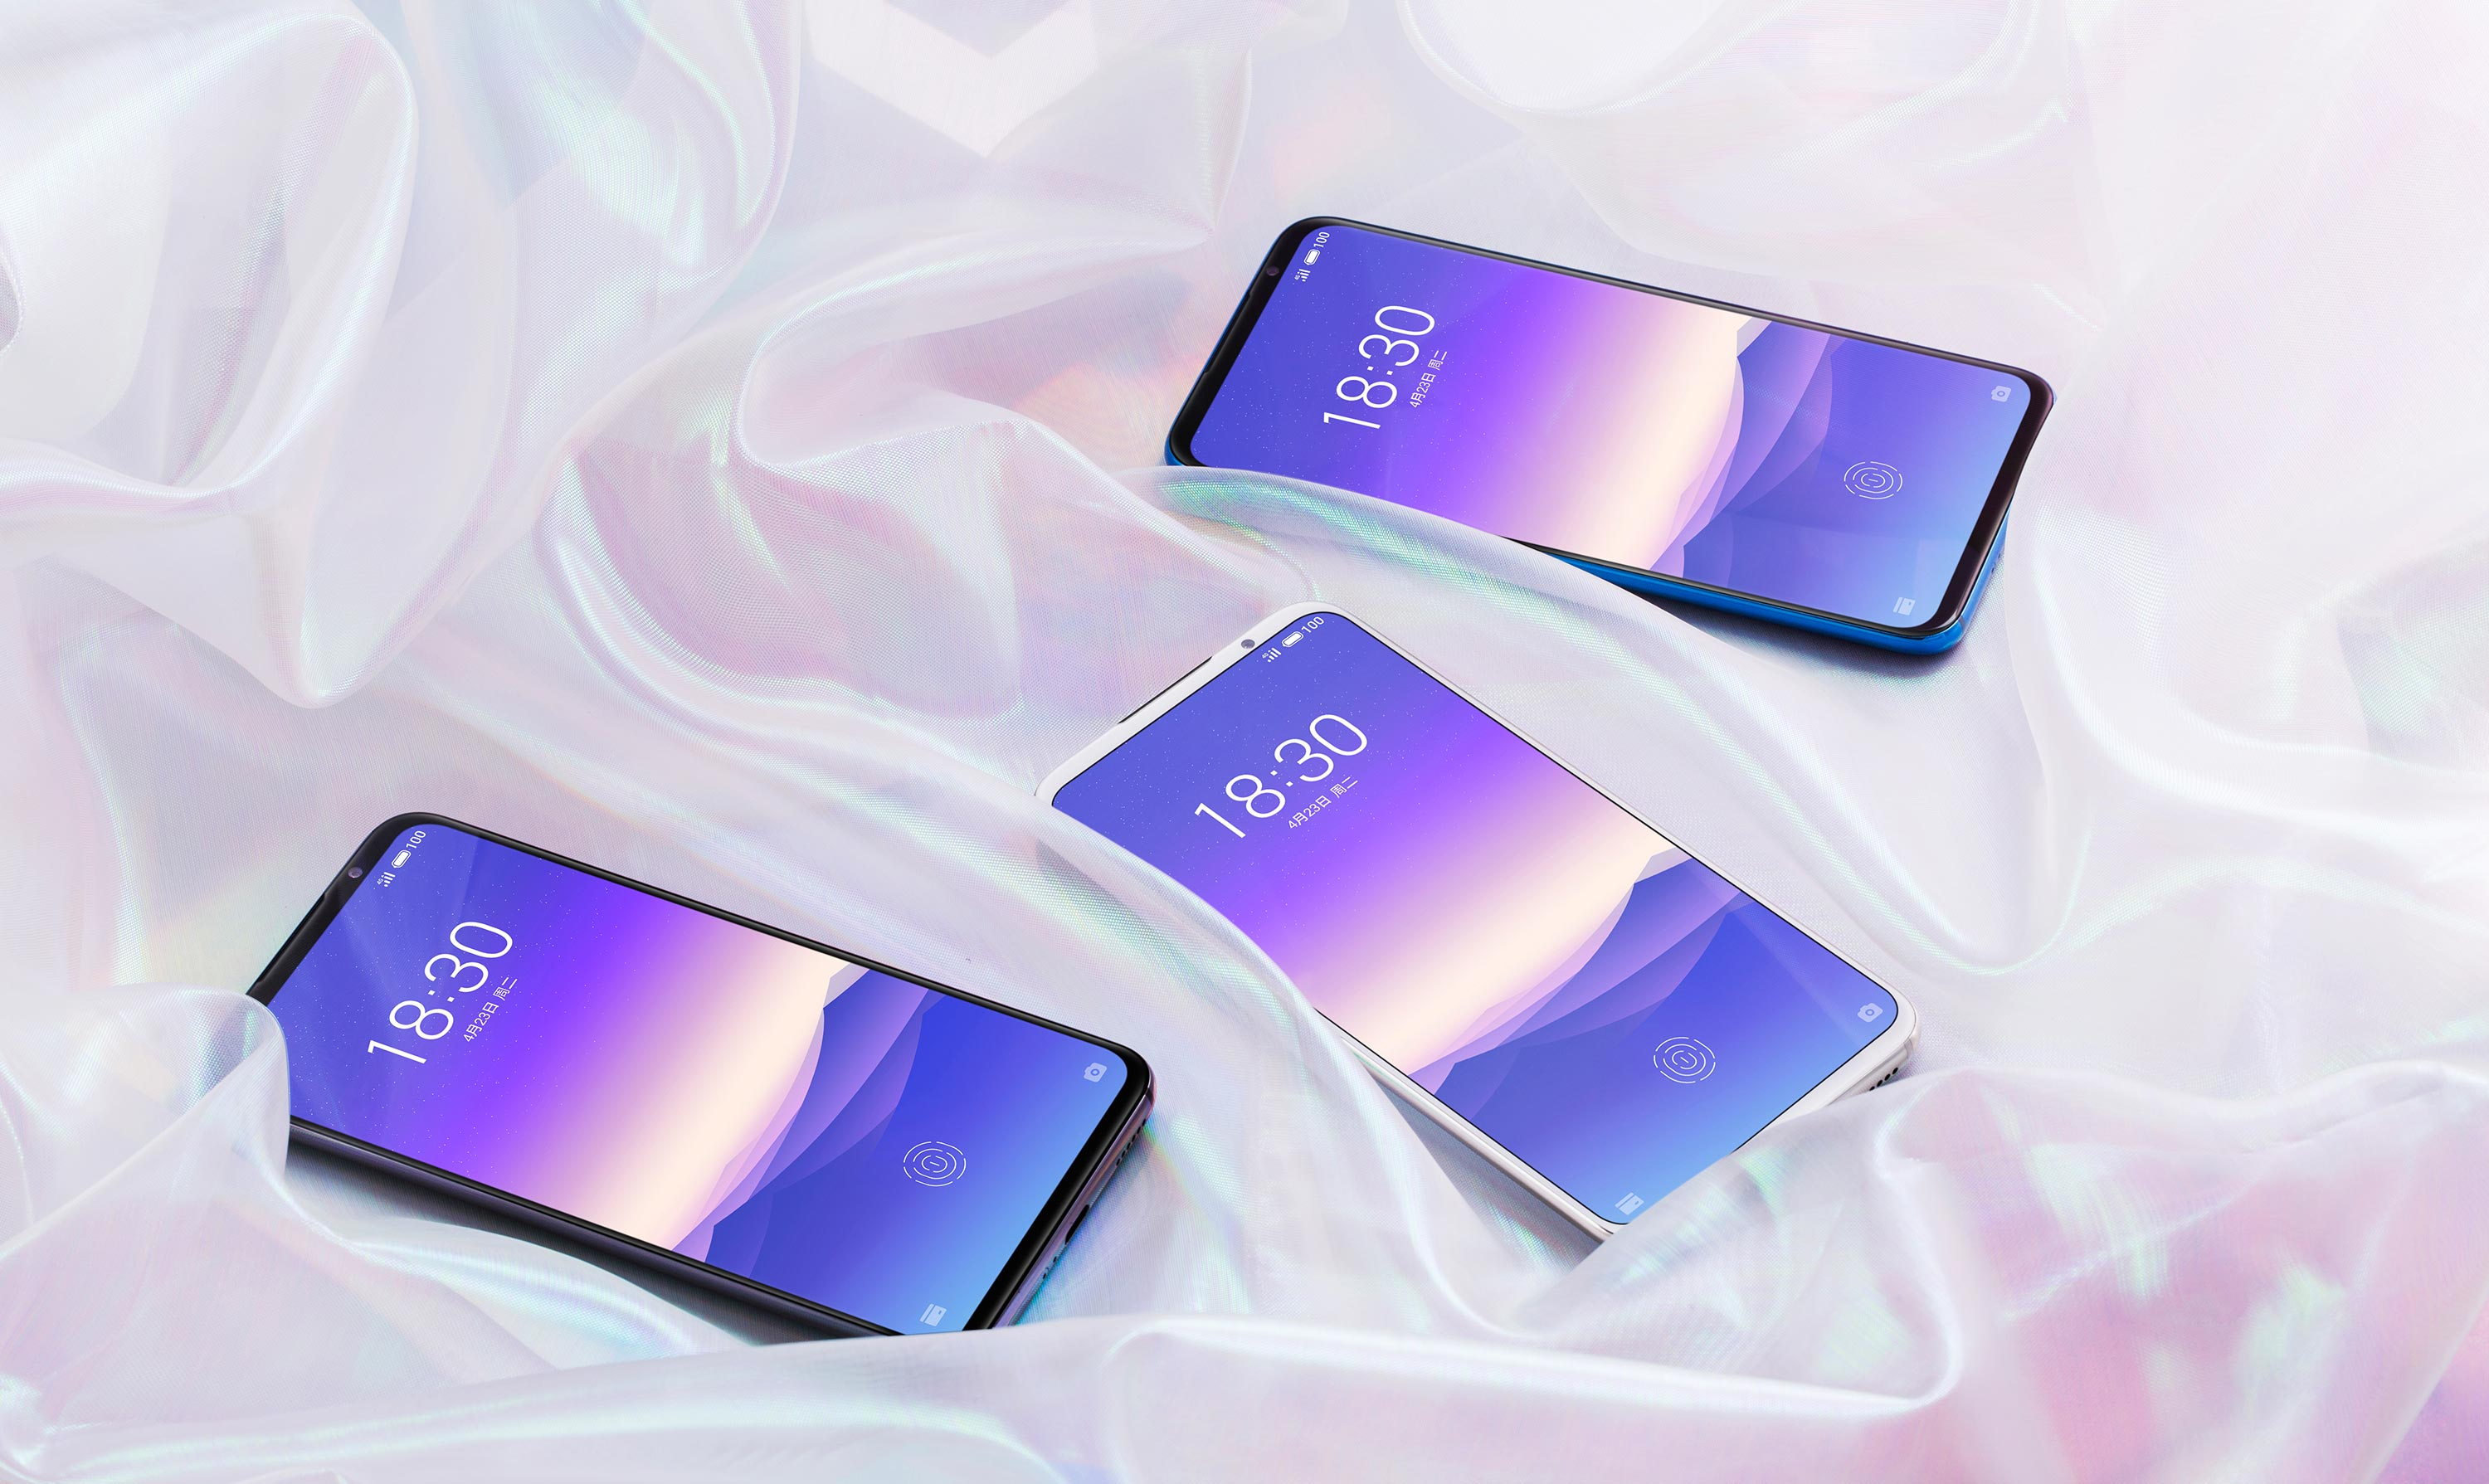 Meizu 16s announced: No notch, Snapdragon 855, and a lot of megapixels